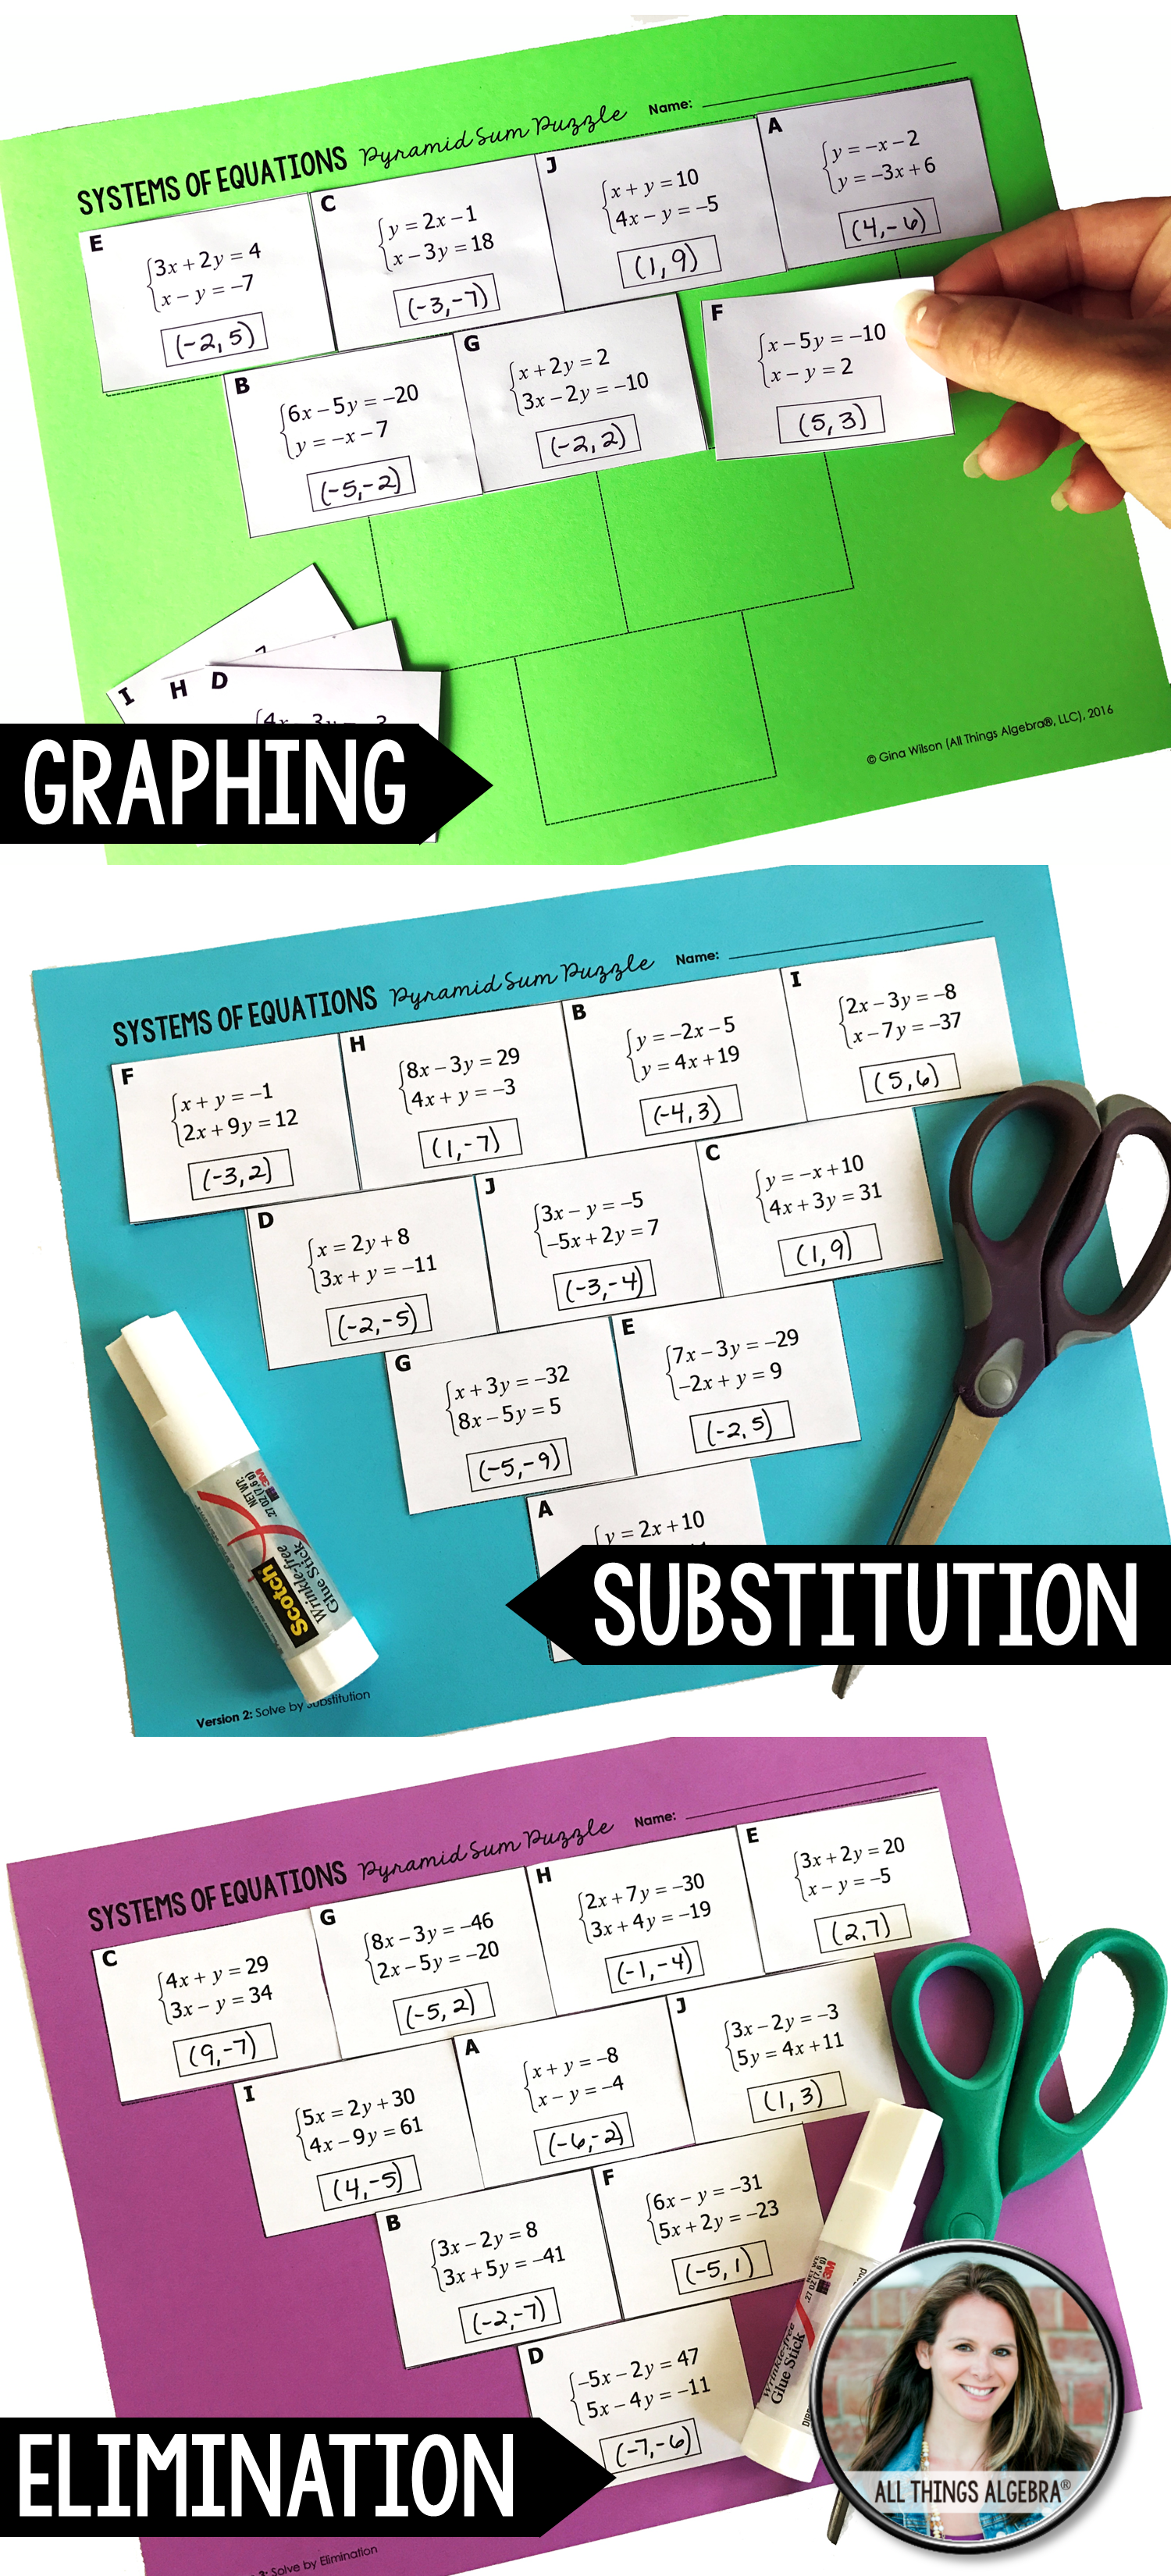 Systems Of Equations Pyramid Sum Puzzles 3 Puzzles